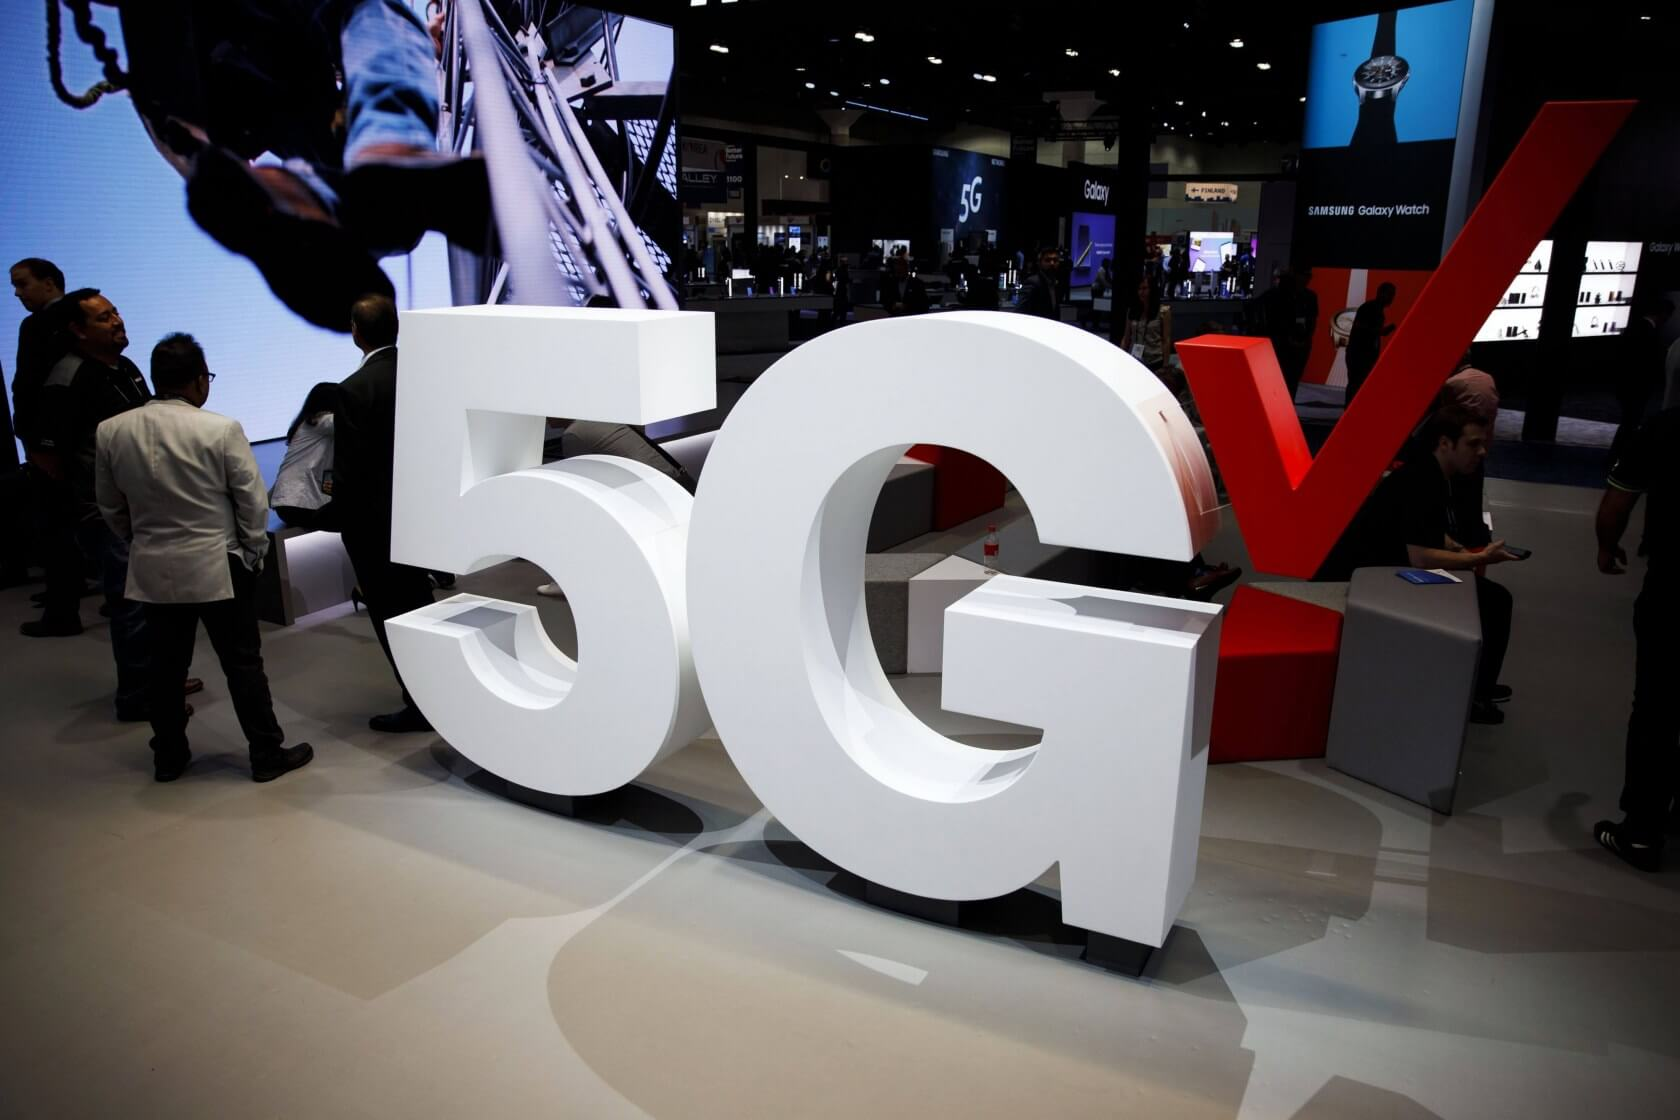 Verizon enables 5G uploads in 35 cities, boosting speeds by 30 percent